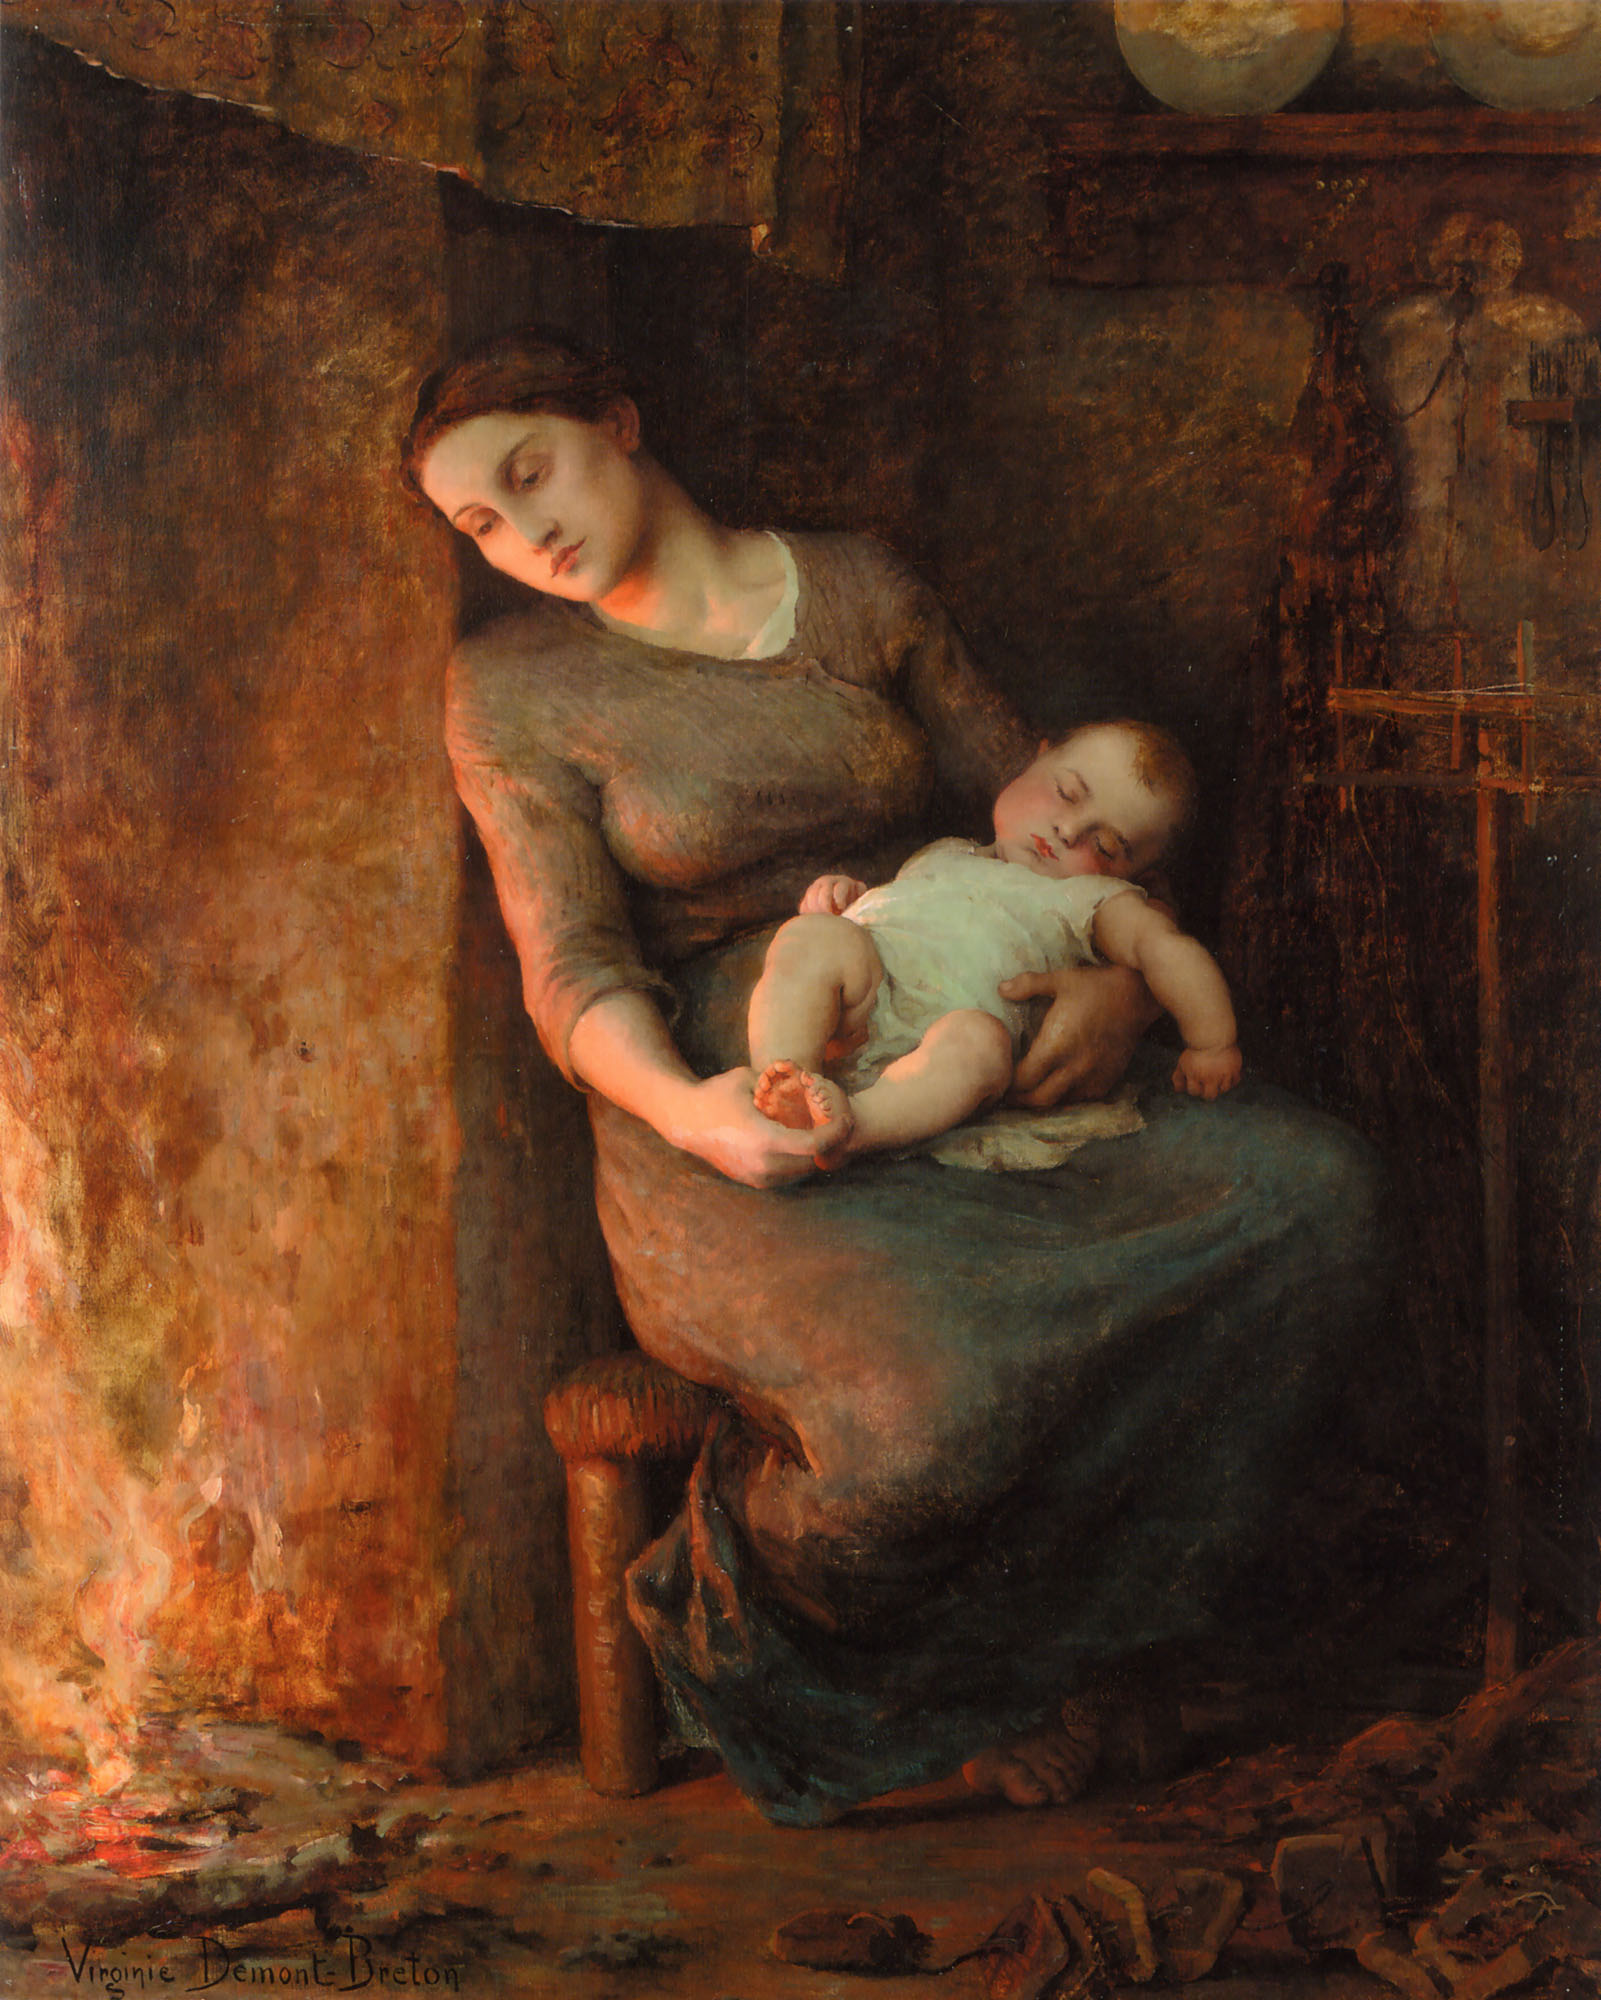 Her husband is at sea :: Virginie Demont-Breton - Woman and child in painting and art ôîòî